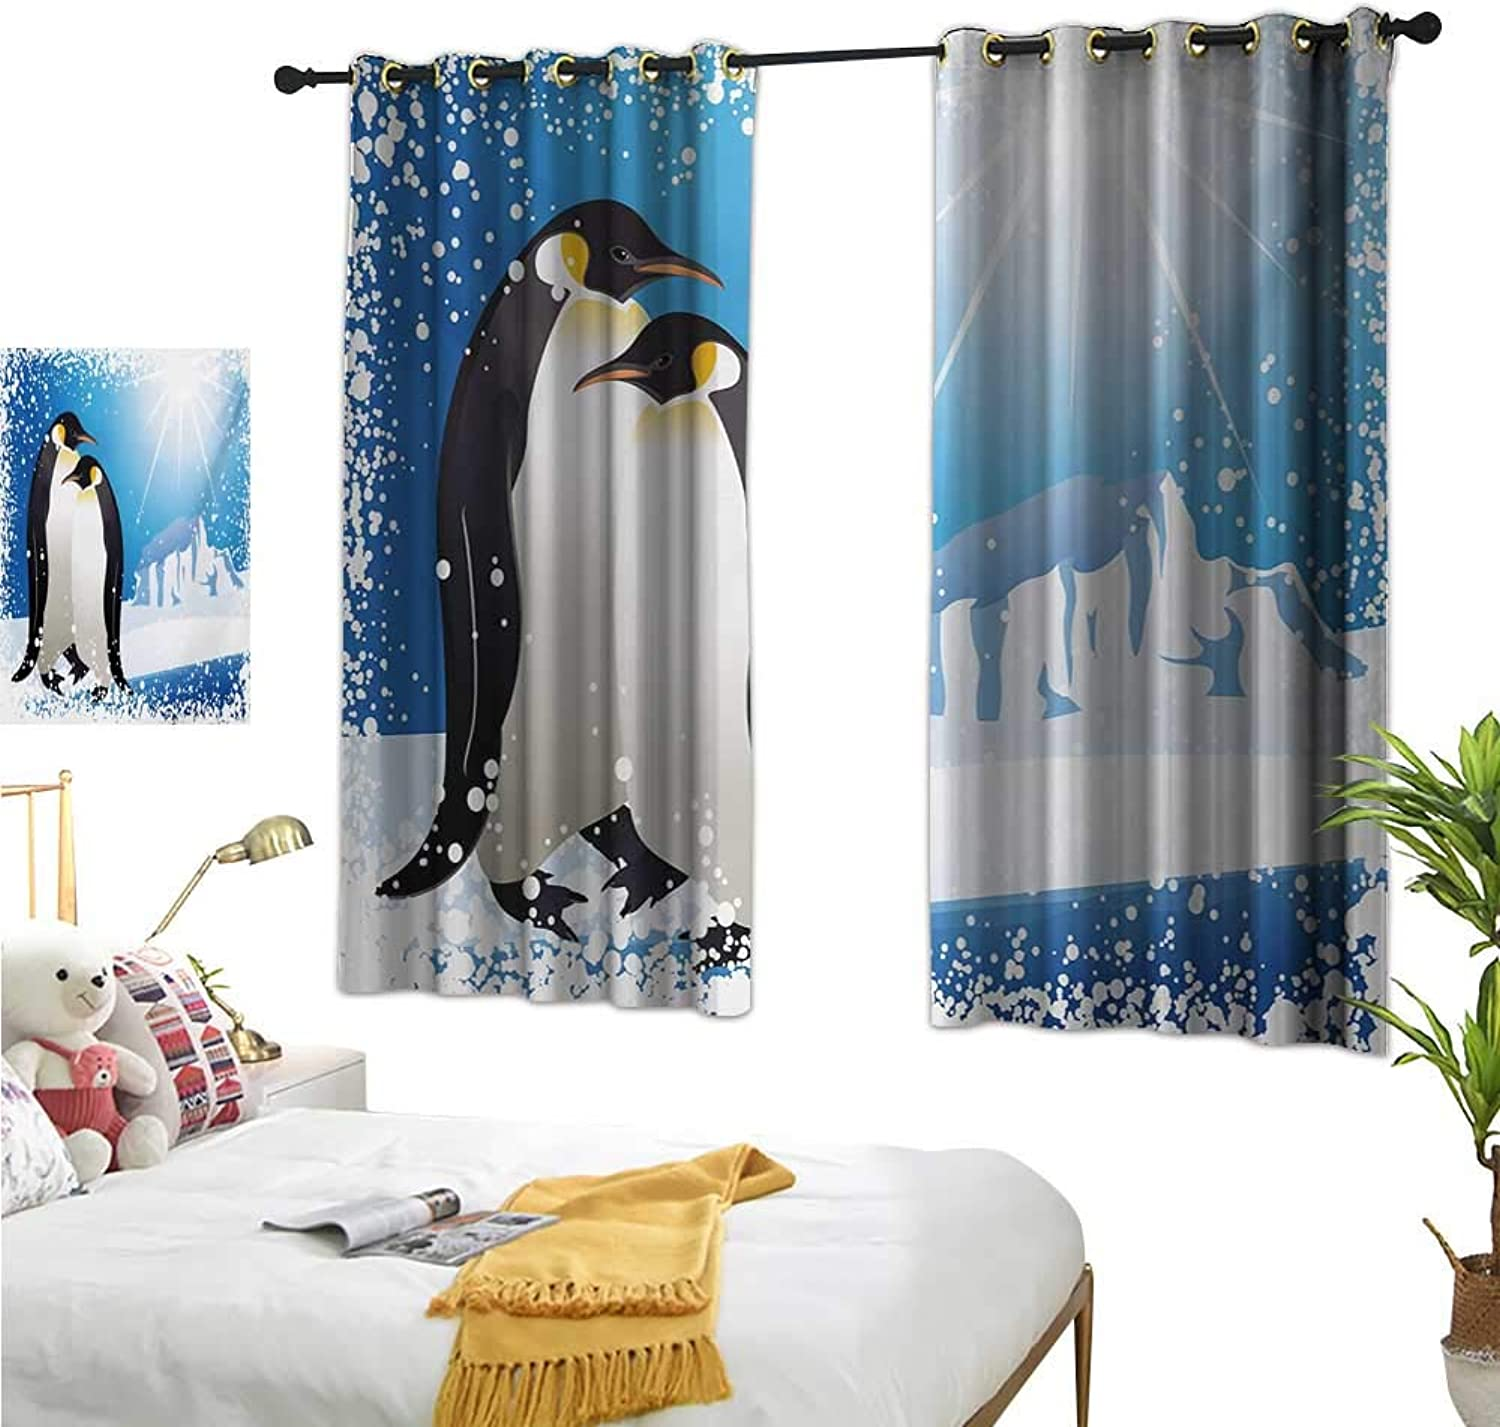 Luckyee Decorative Curtains for Living Room,Winter,63  x 45 ,Cute Penguins on Iceland at Arctic Snowy Frozen Climate Kids Illustration,Suitable for Bedroom Living Room Study, etc.